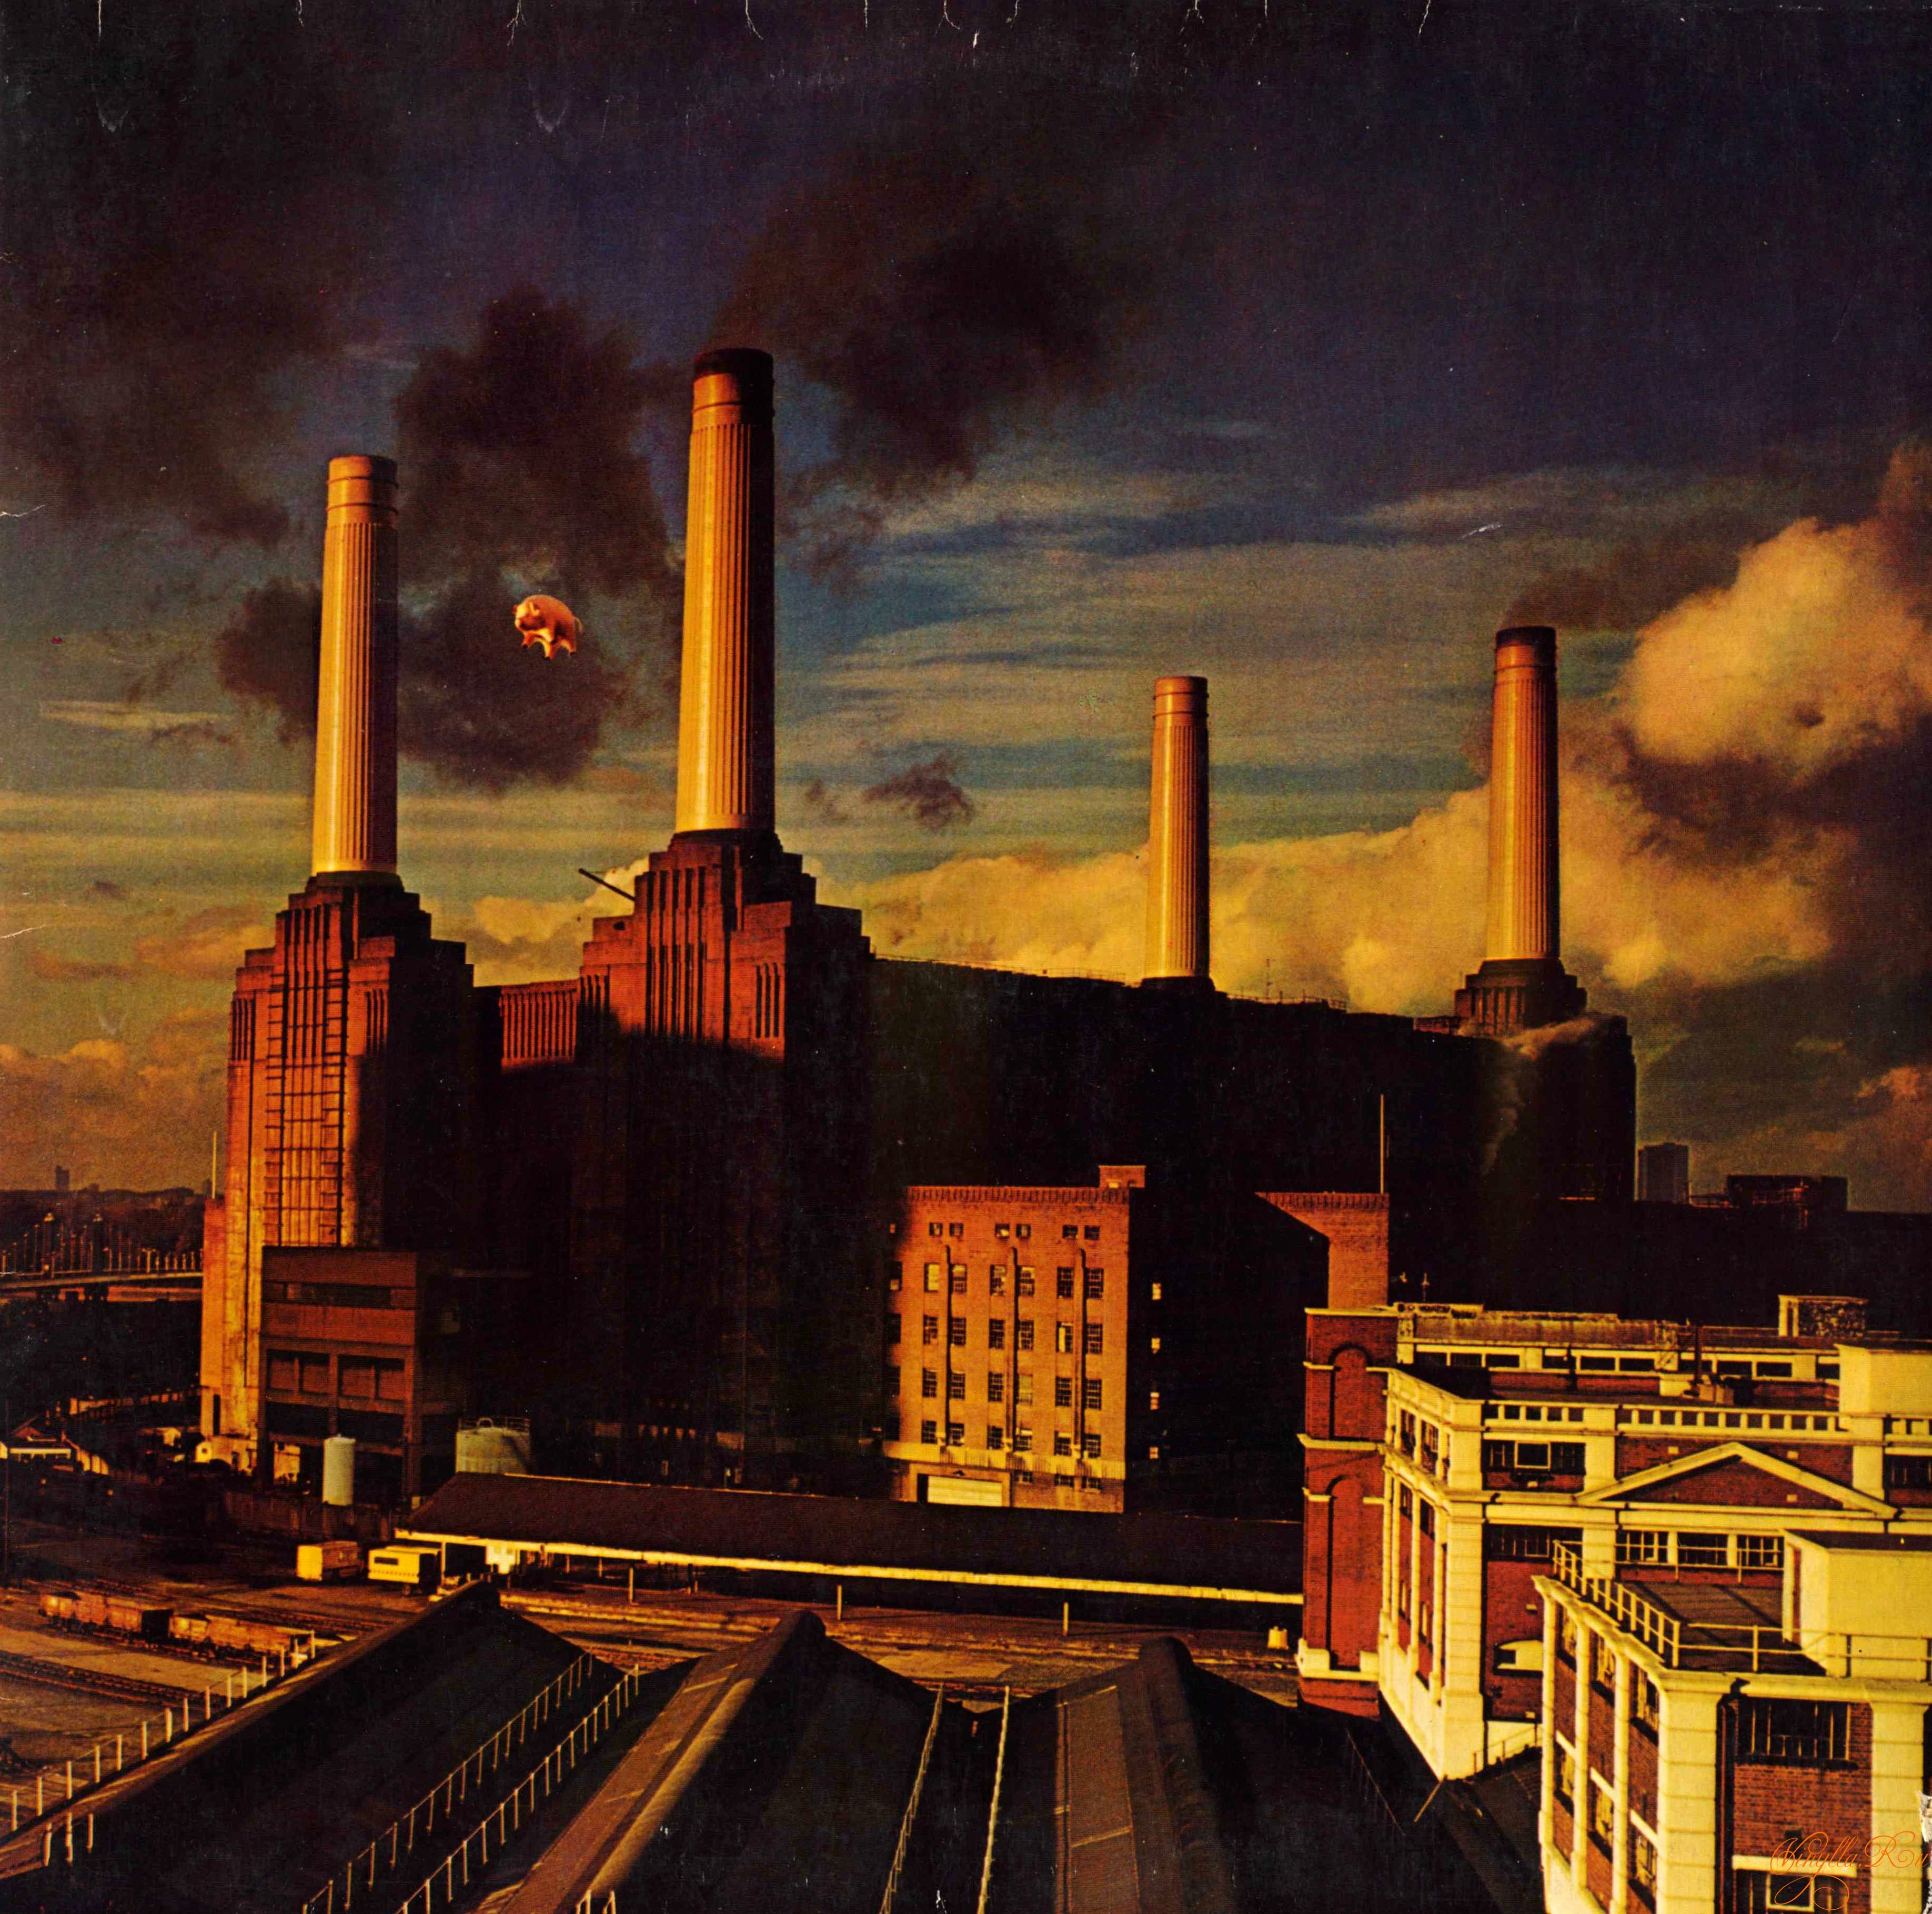 album_cover_pink_floyd_1977_animals.jpg